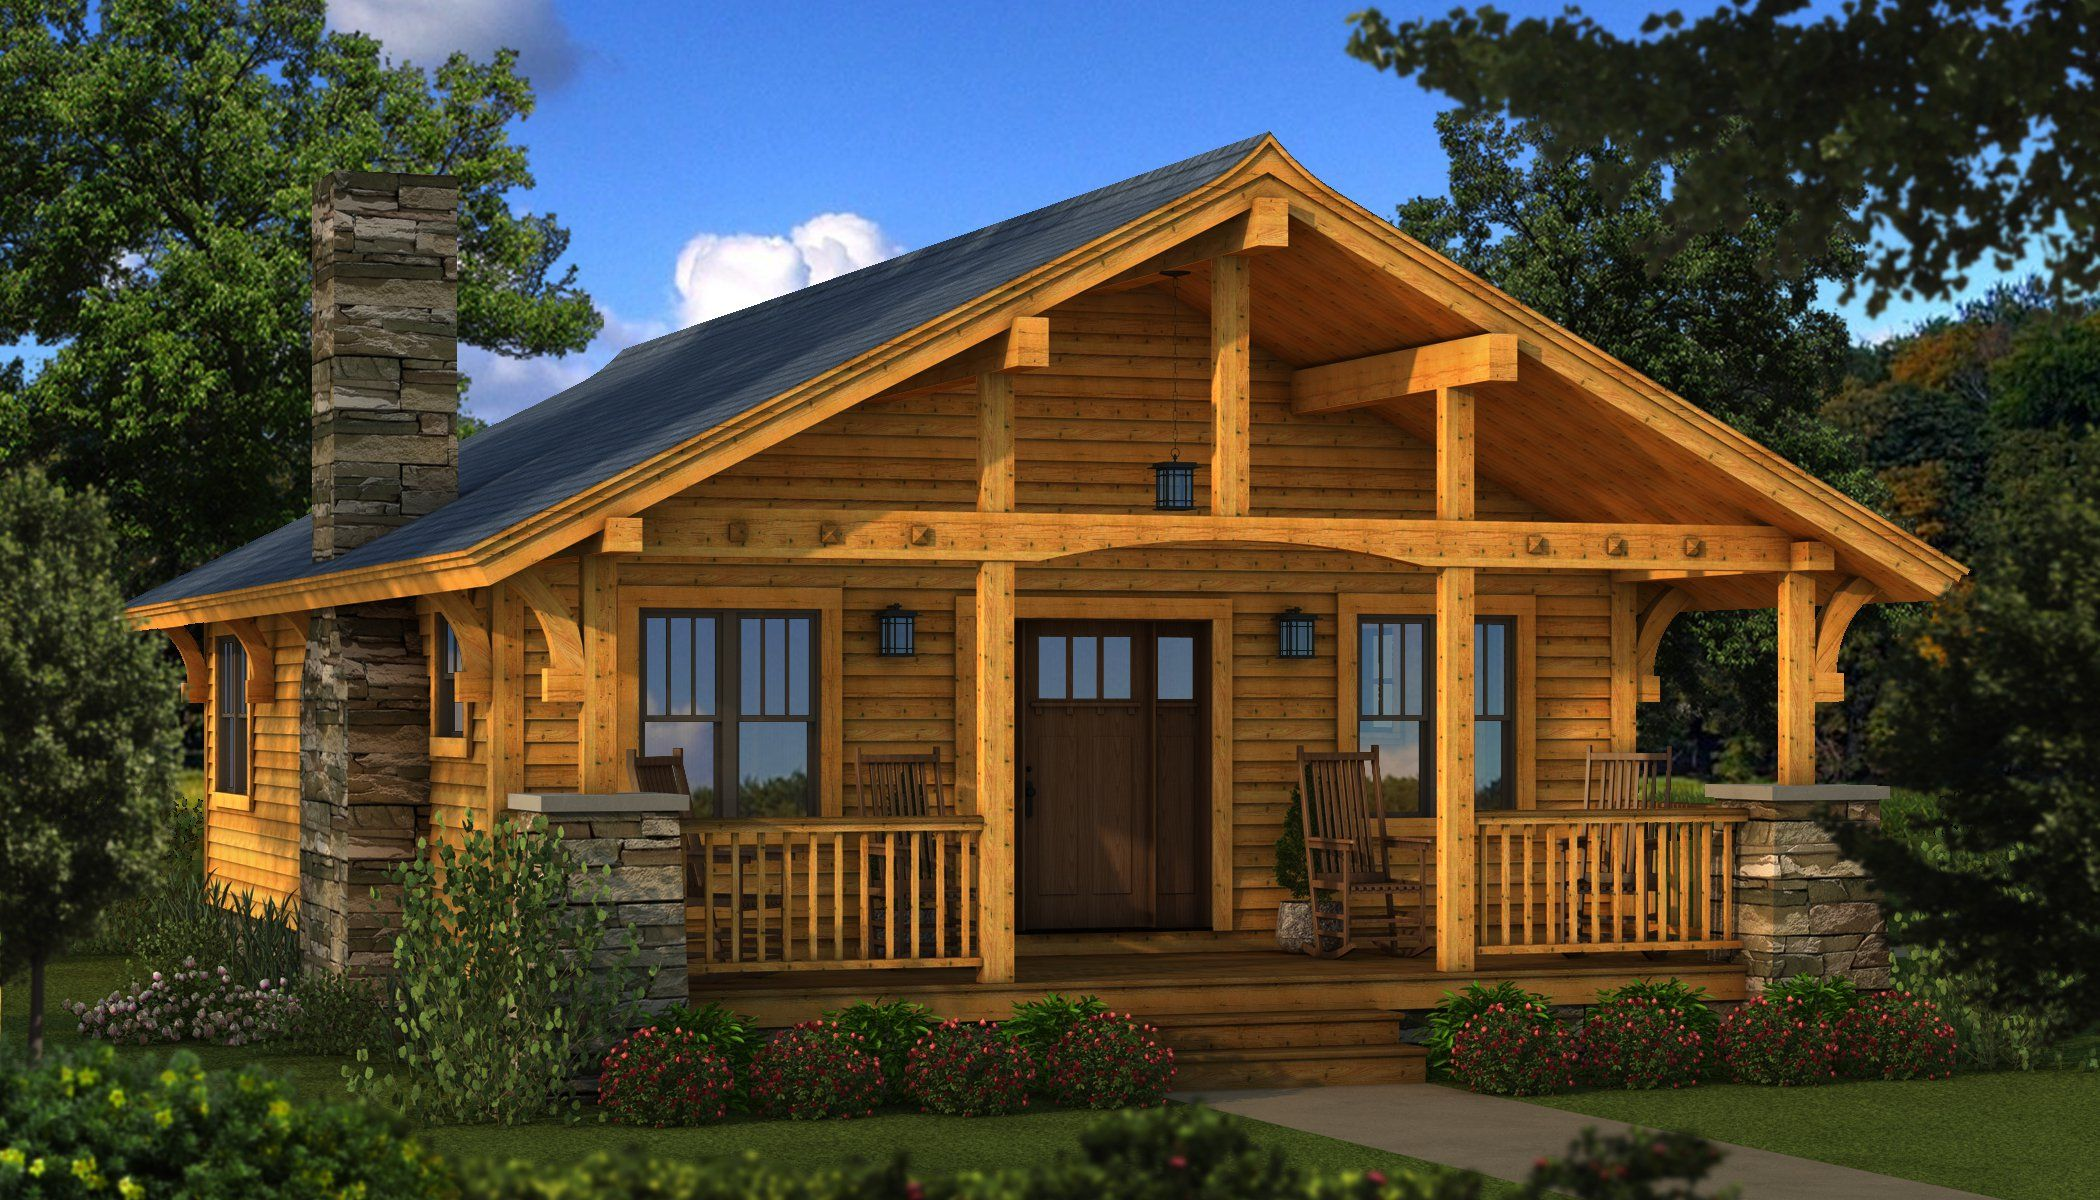 Bungalow 2 Log Cabin Kit Plans Information Southland Log Homes Cabin Kit Homes Log Cabin Floor Plans Log Cabin Plans